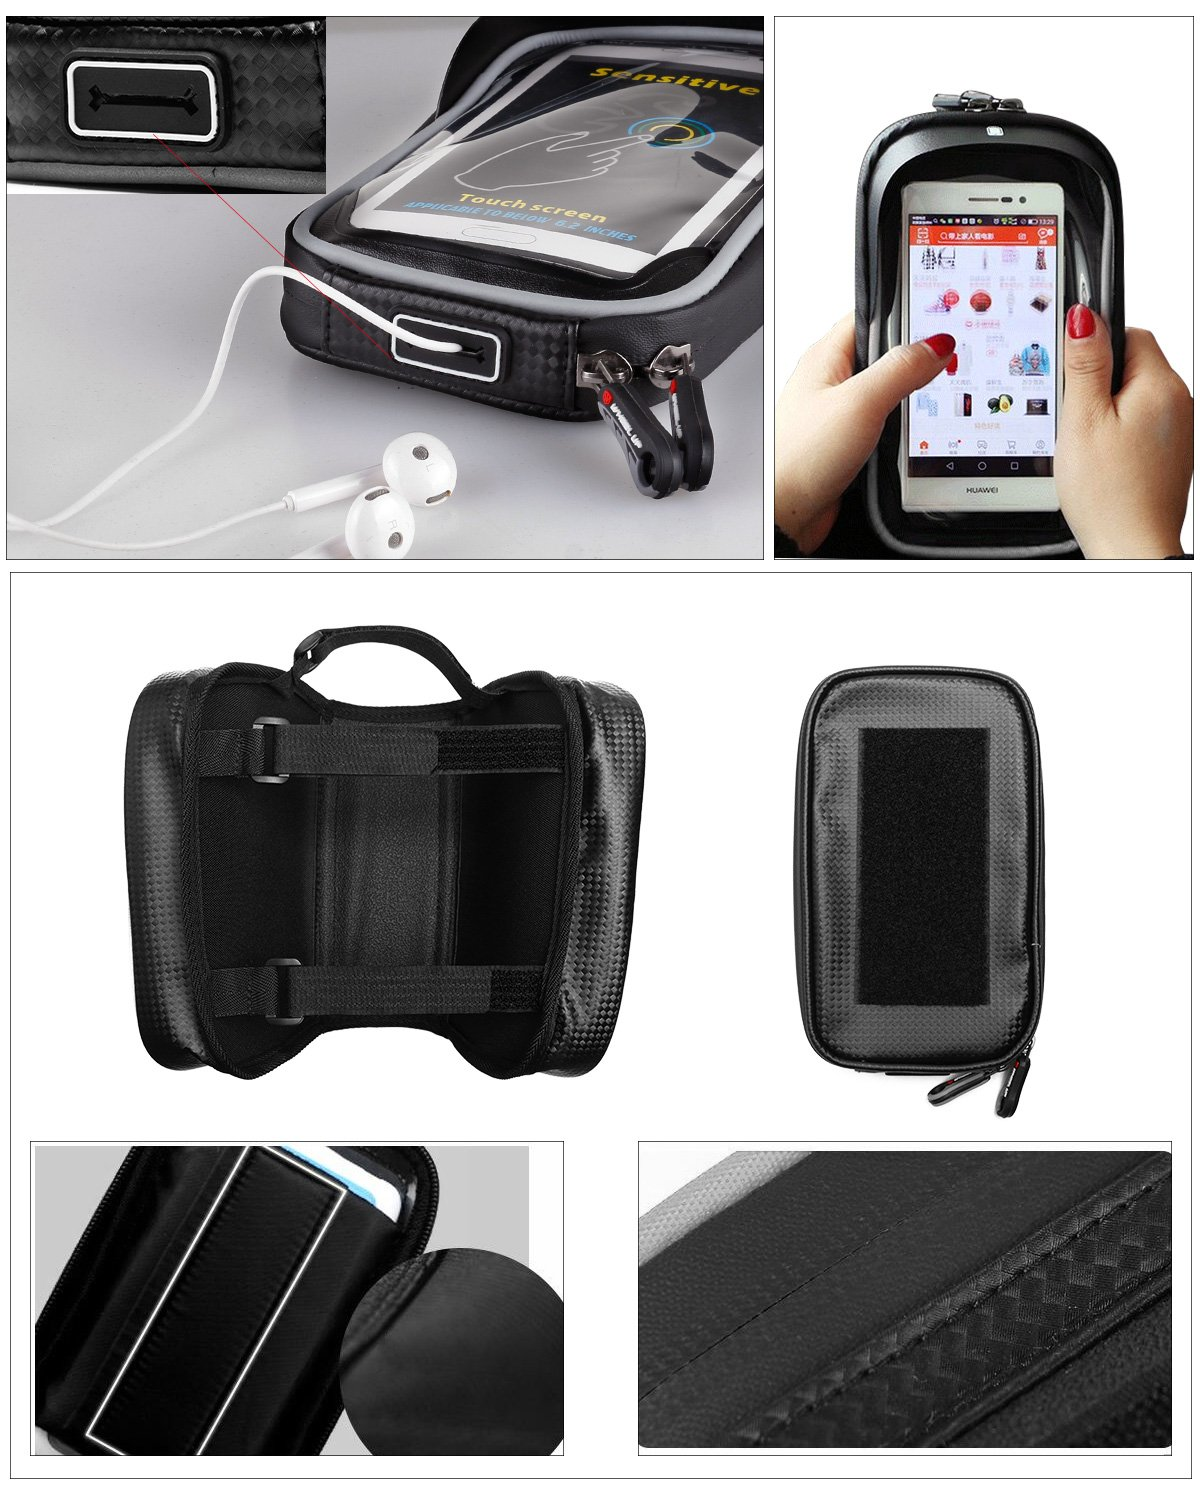 ROTTO Bike Frame Bag Bicycle Top Tube Bag Cell Phone Bag Waterproof Sensitive Touch Screen